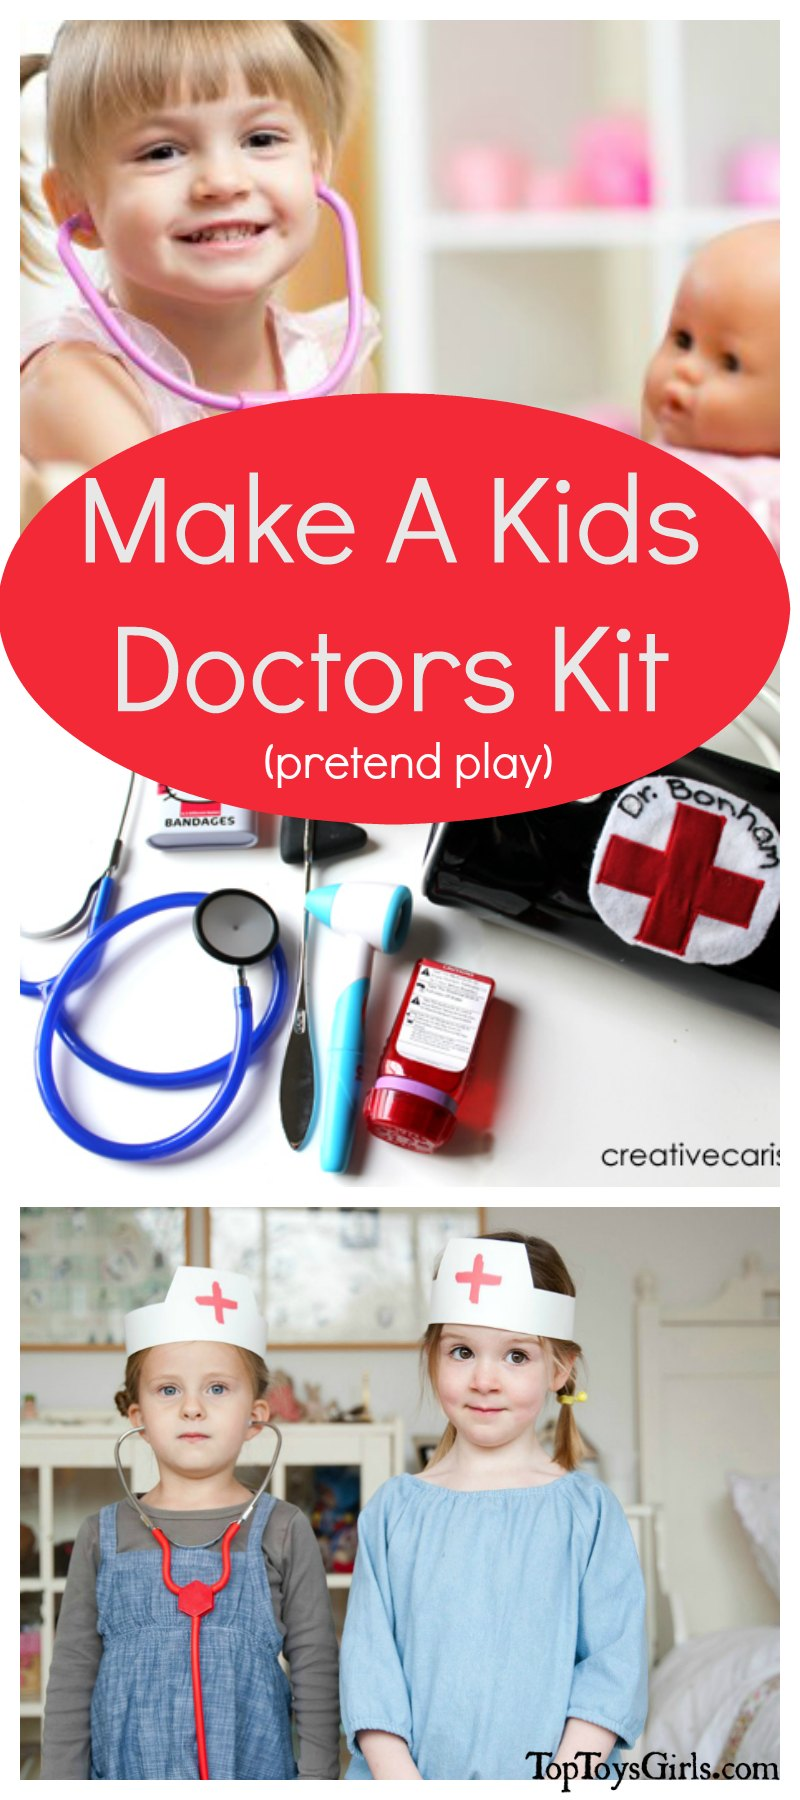 Make a Kids Doctors Kit....Just For Fun